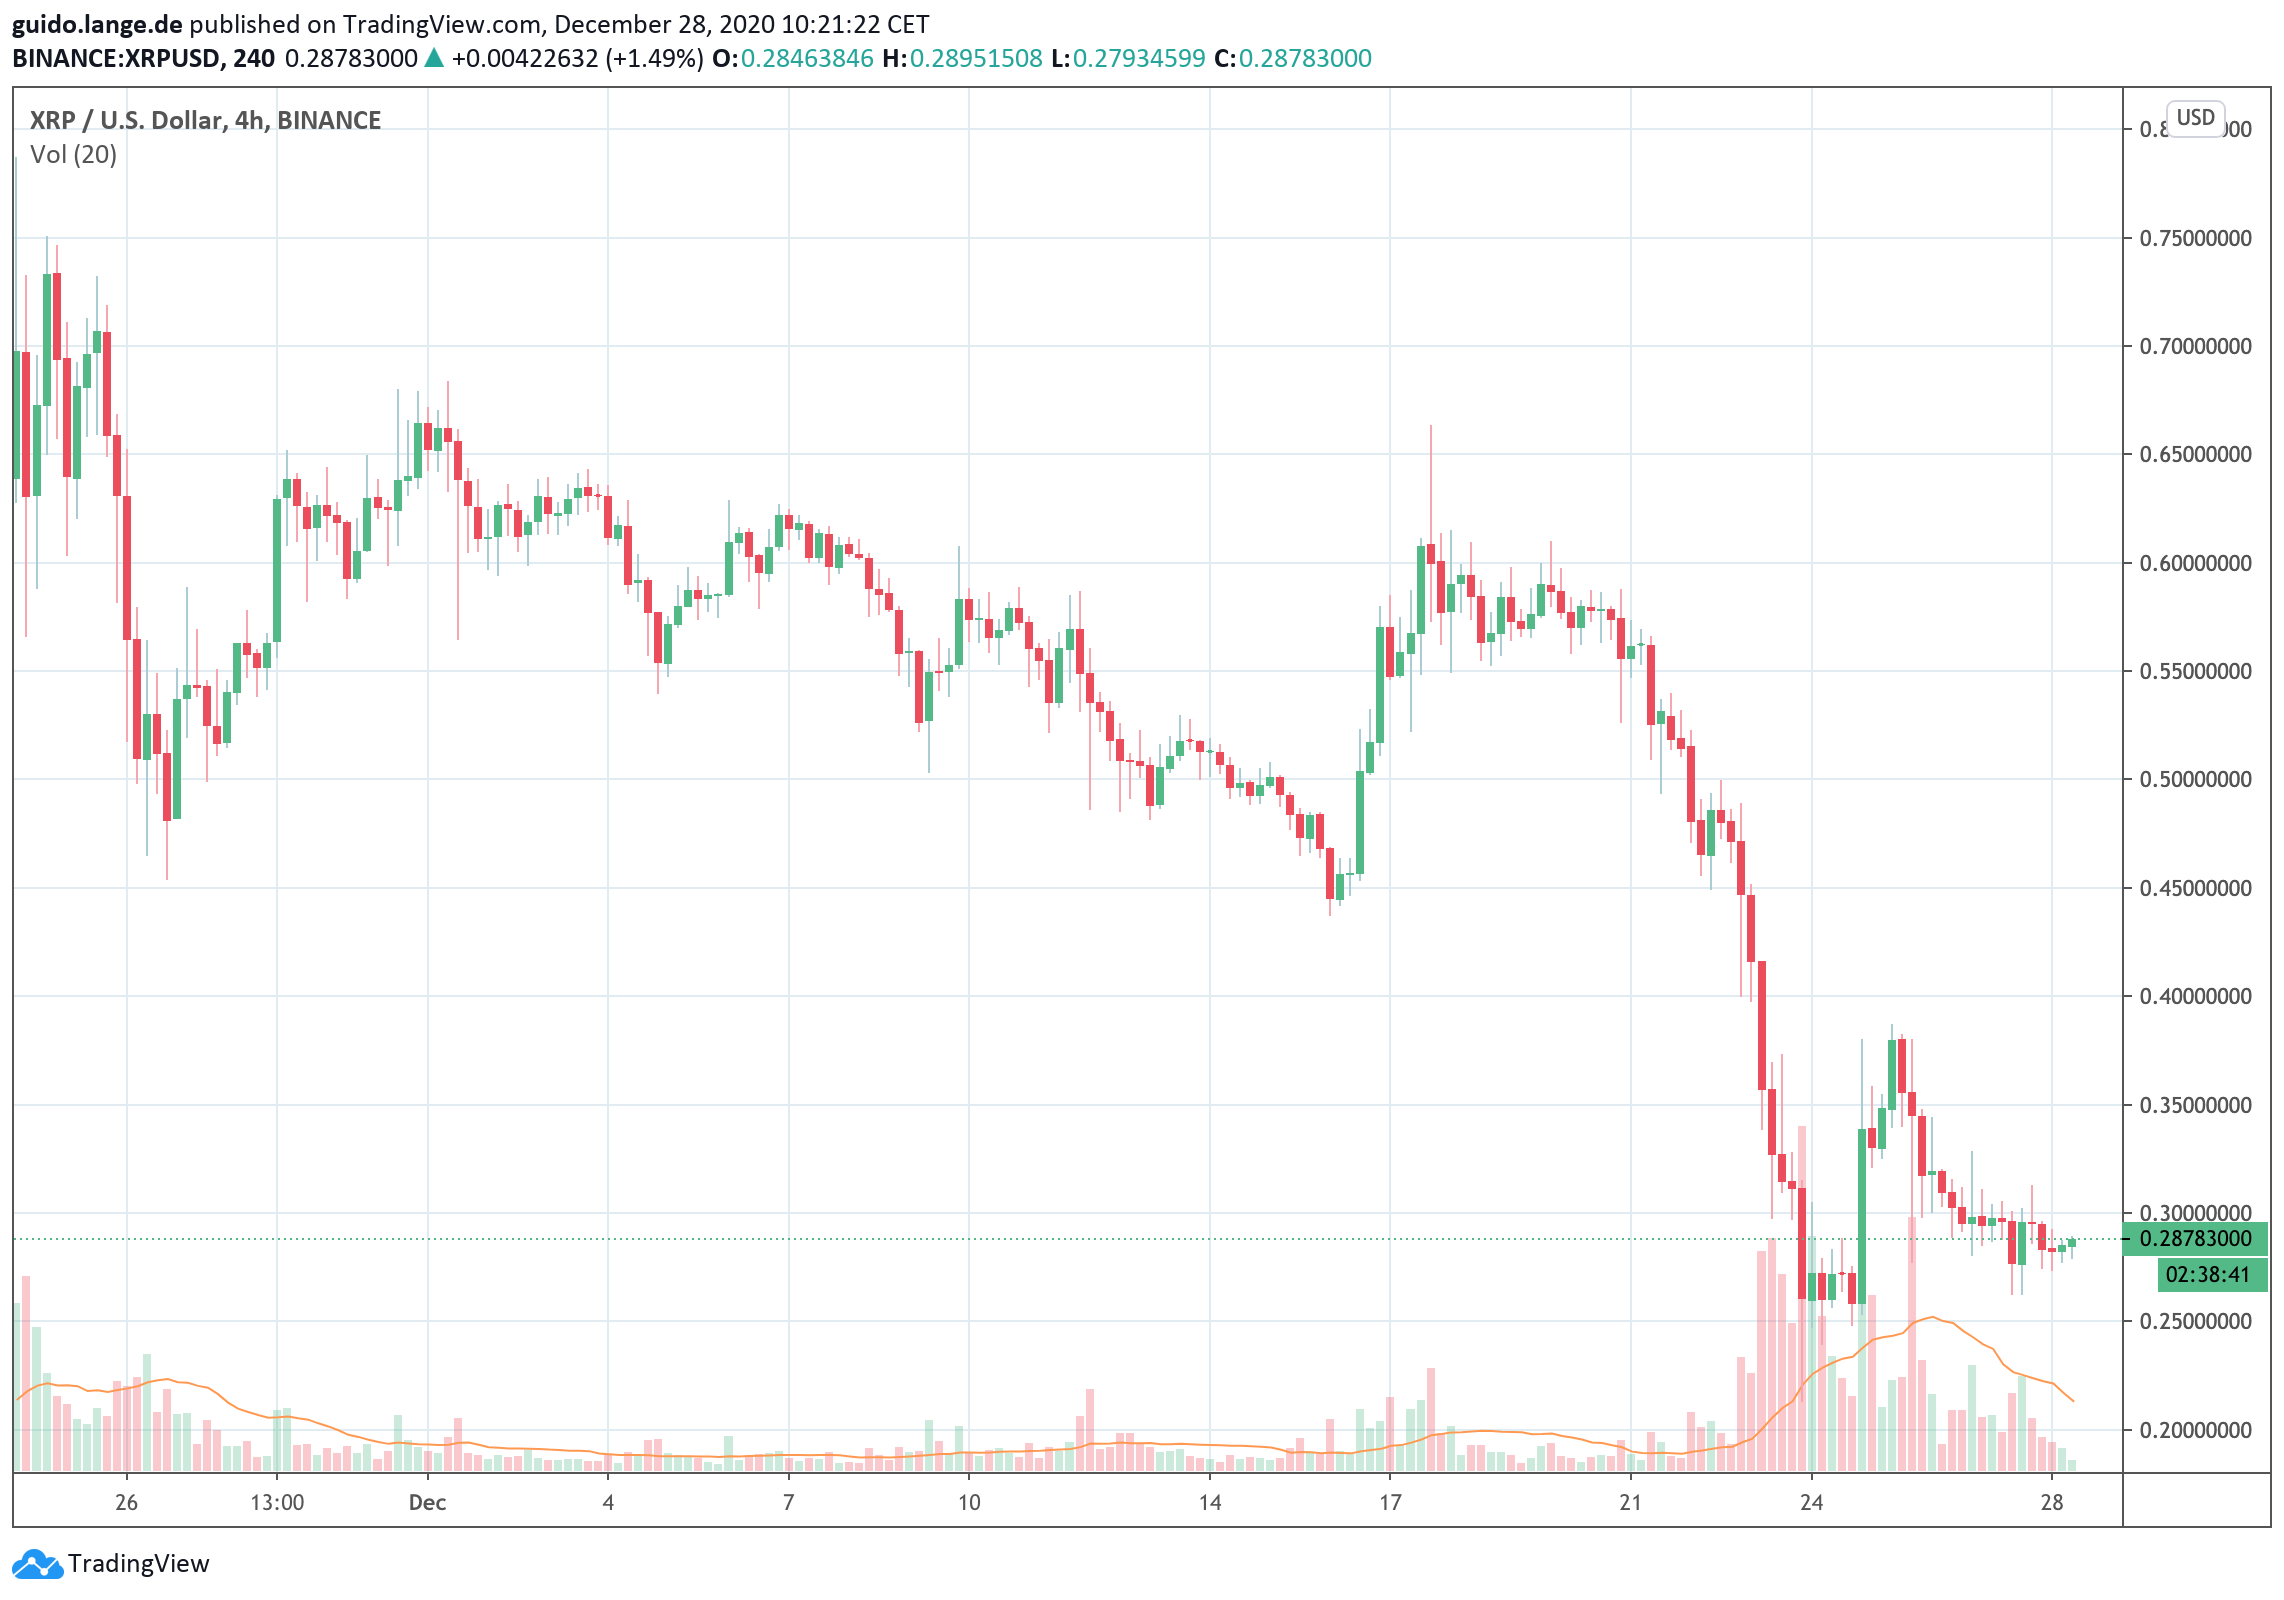 XRP CryptoCurrency-Wert.